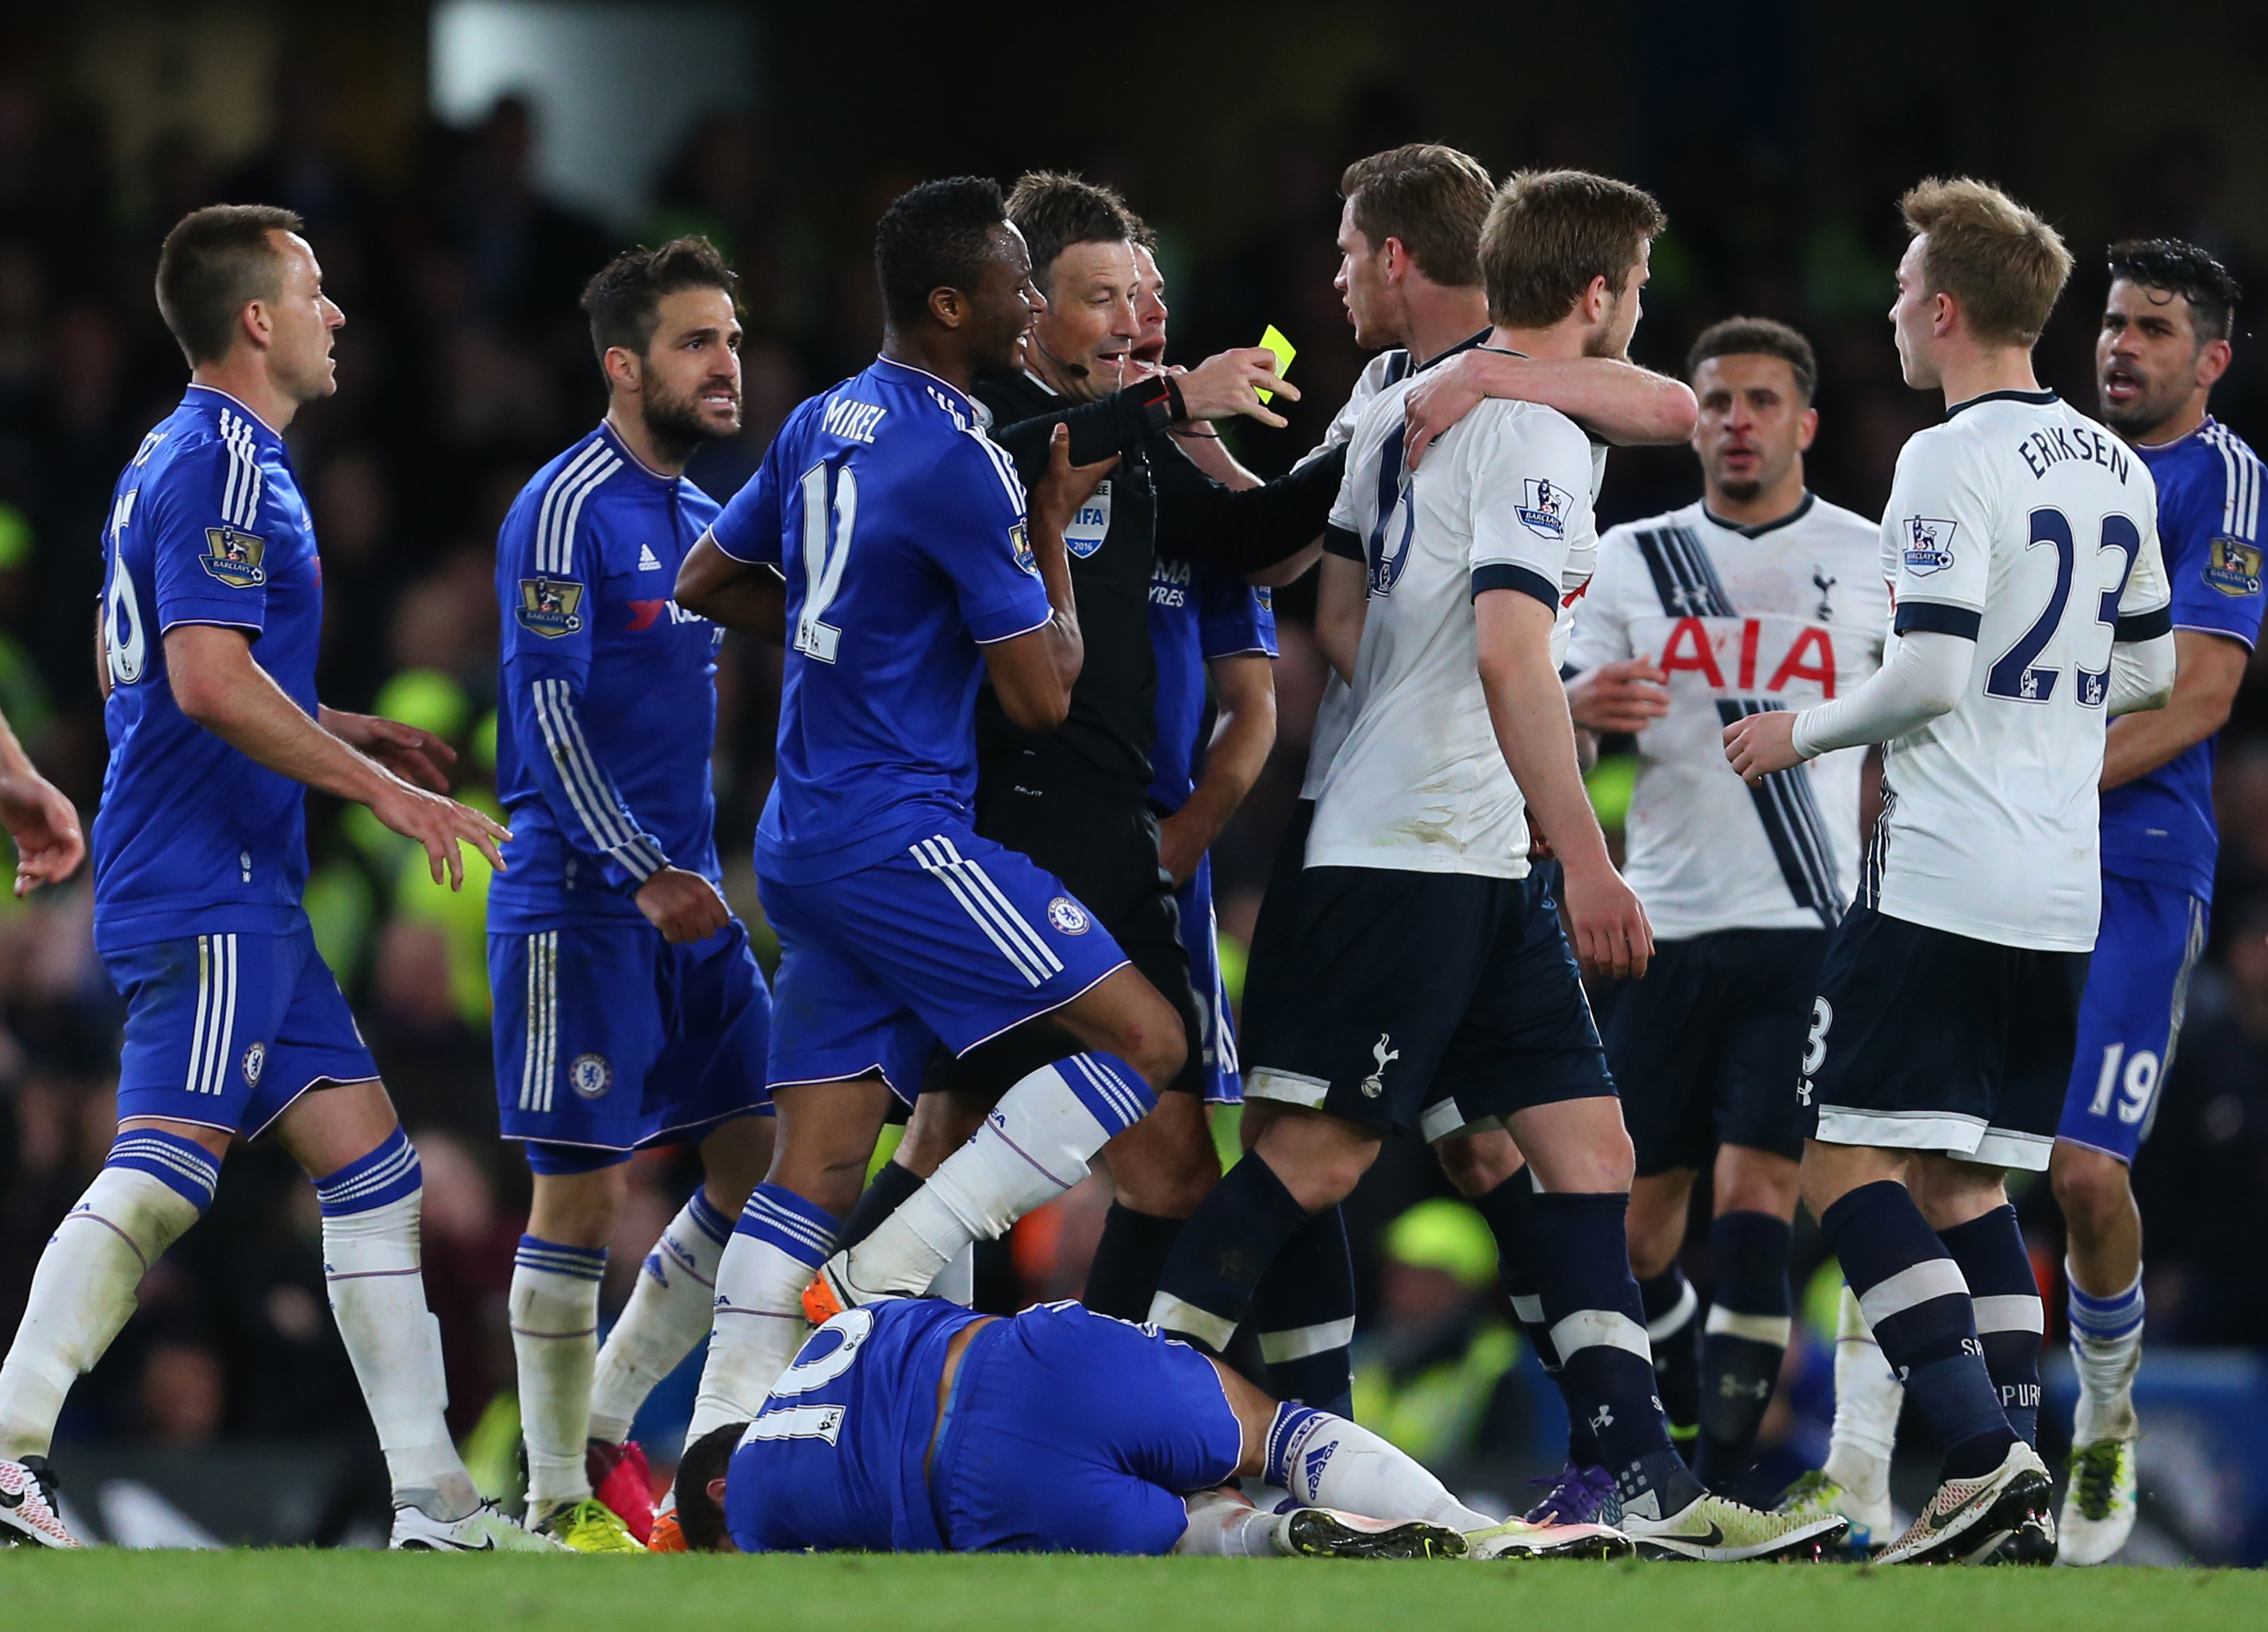 Tottenham have more 'hatred' for Chelsea than Arsenal, claims ex-Spurs star Darren Bent ahead of north London derby